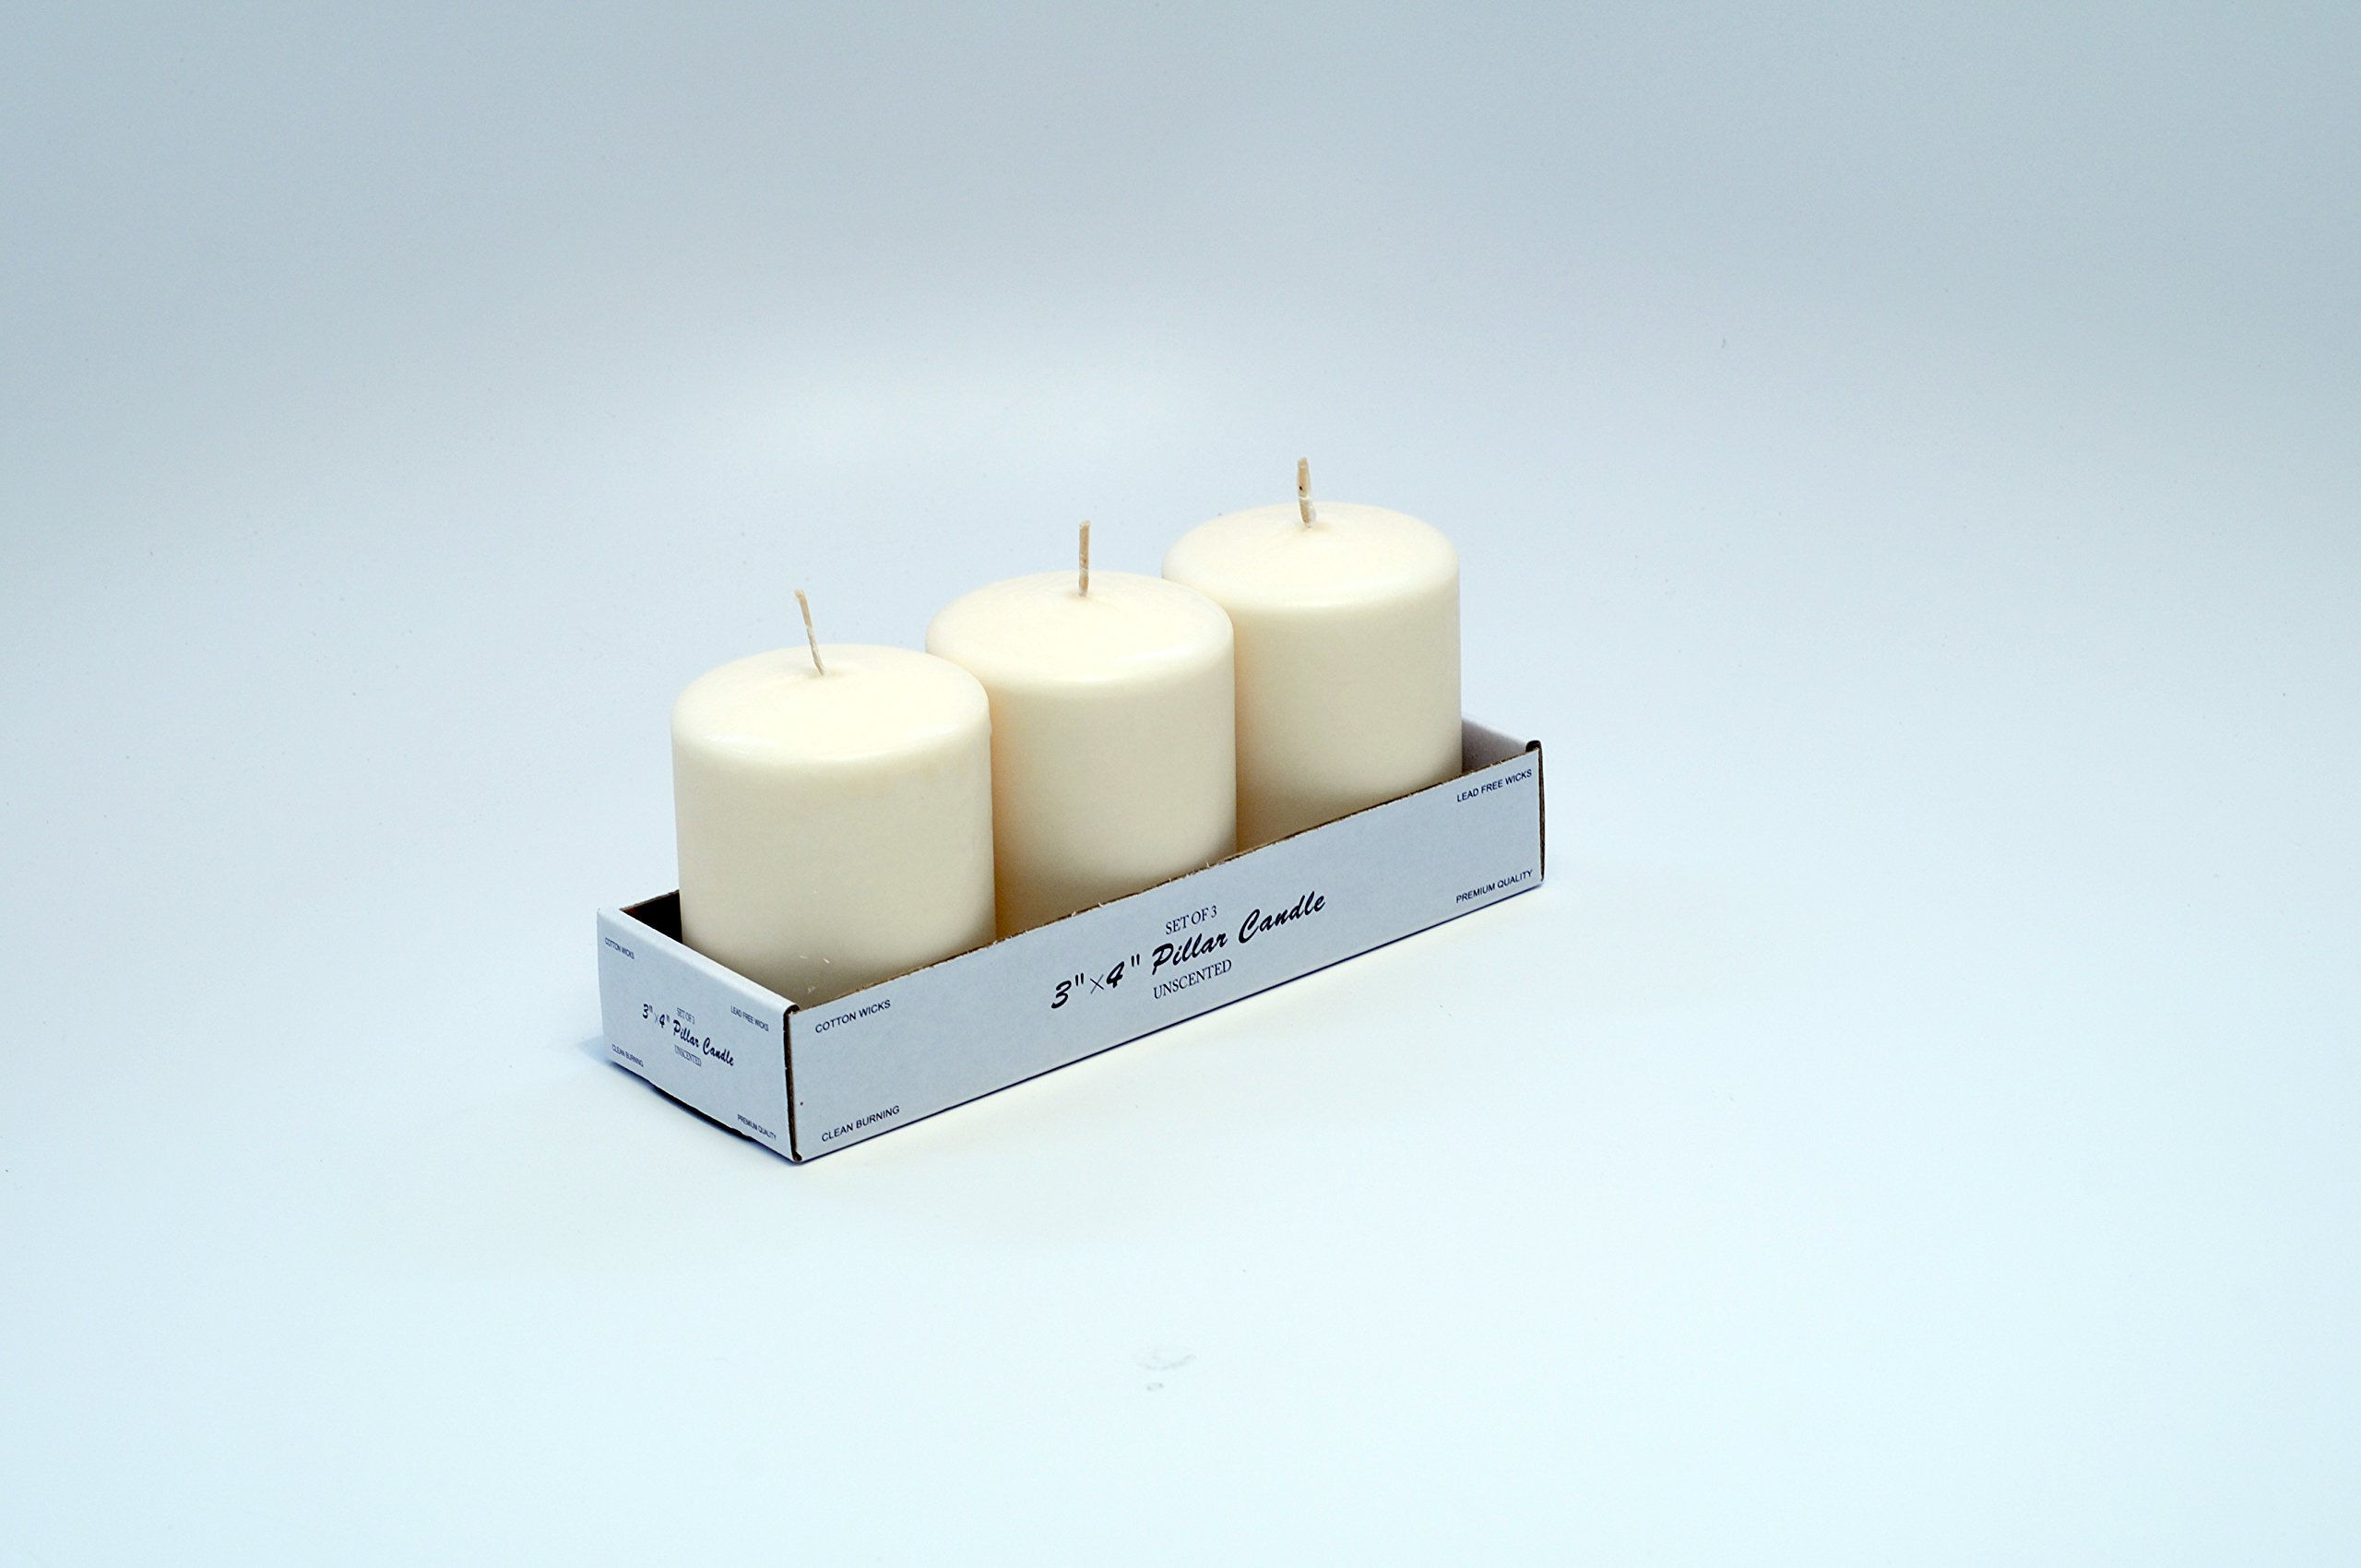 Candles4Less - 3 x 4 Inch White Pillar Candles (Bulk/48 Pcs), Unscented White pillar candles with Lead Free Cotton Wicks perfect for wedding by Candles4Less